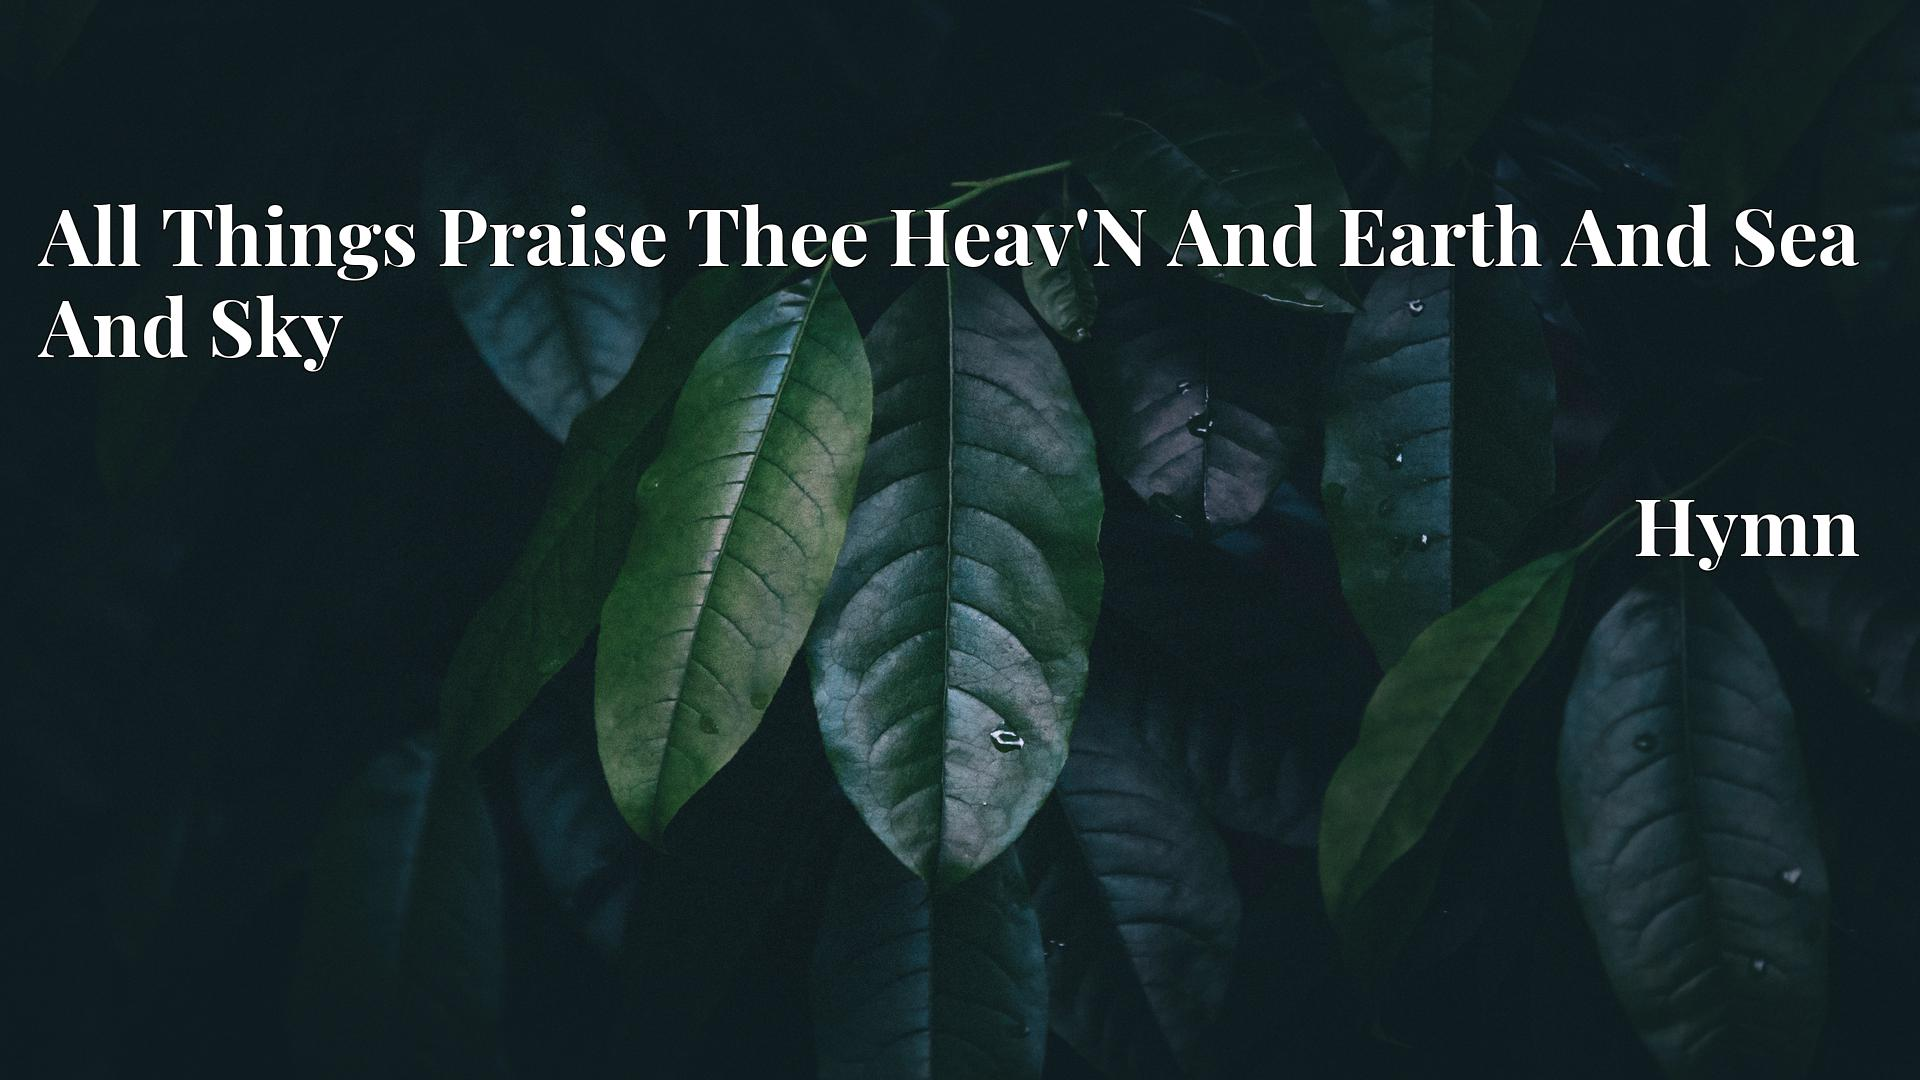 All Things Praise Thee Heav'N And Earth And Sea And Sky - Hymn